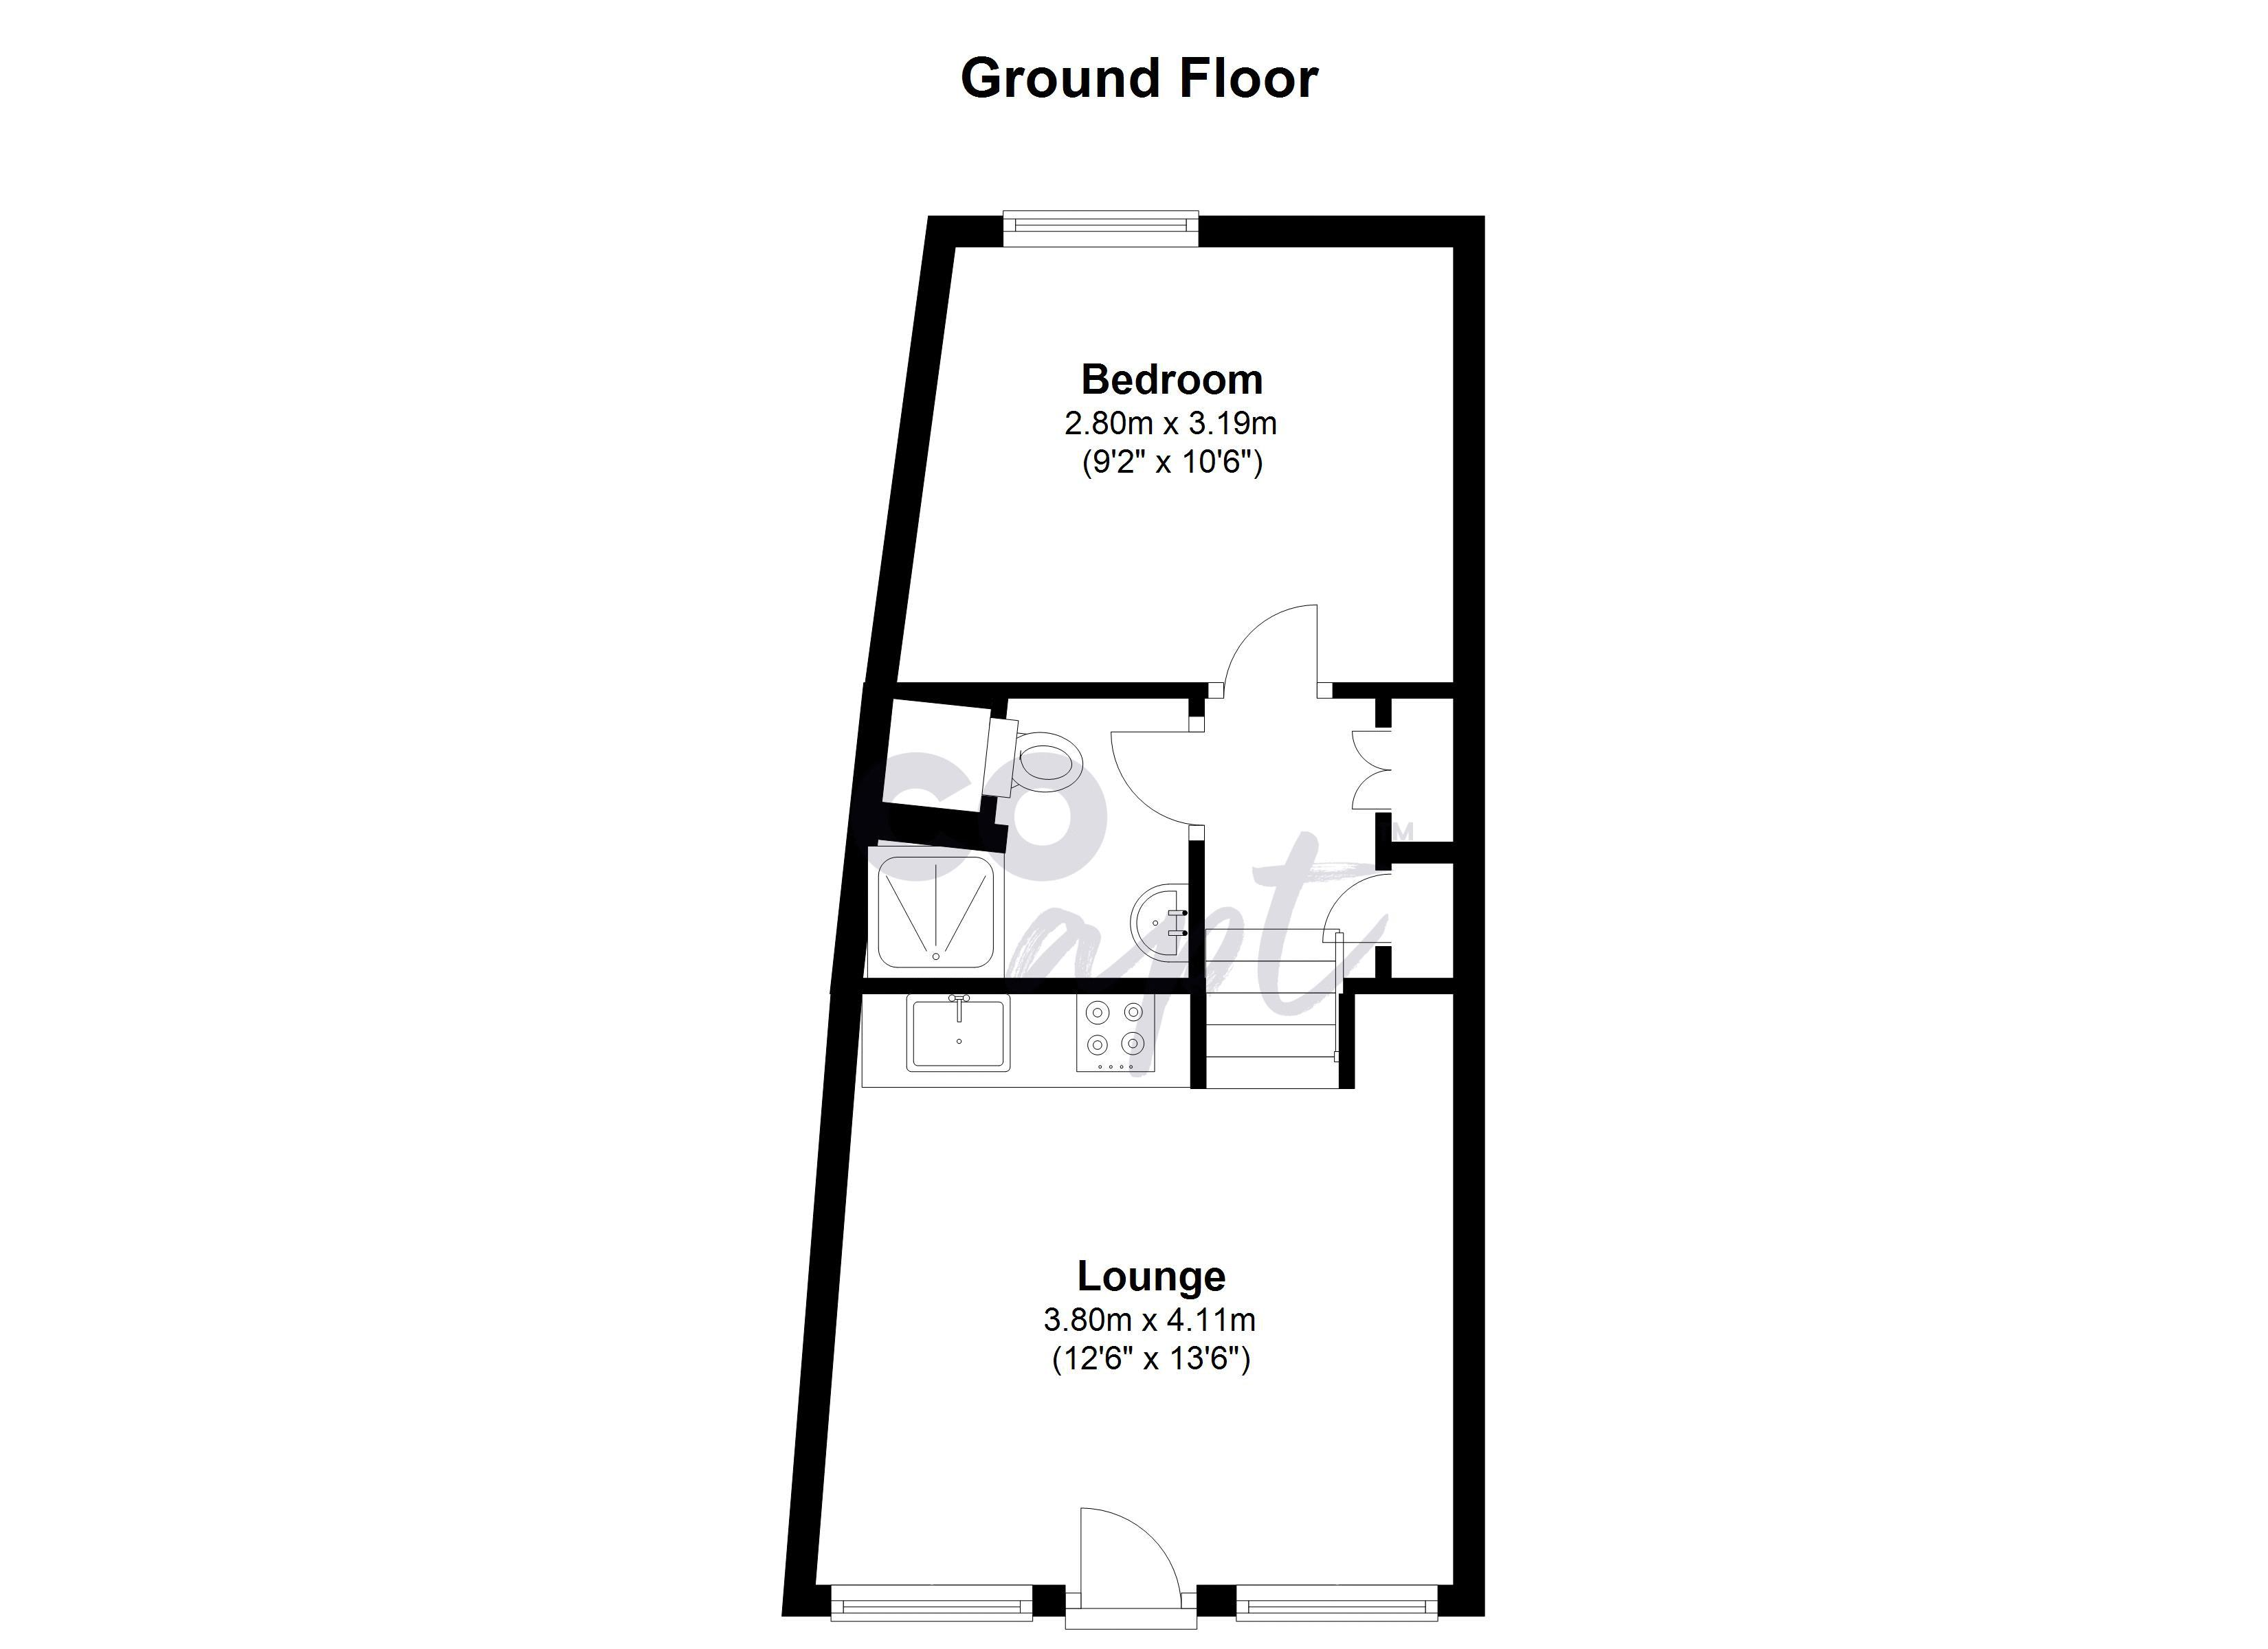 Floor plans for Robertson Road, Brighton property for sale in Preston Drove, Brighton by Coapt